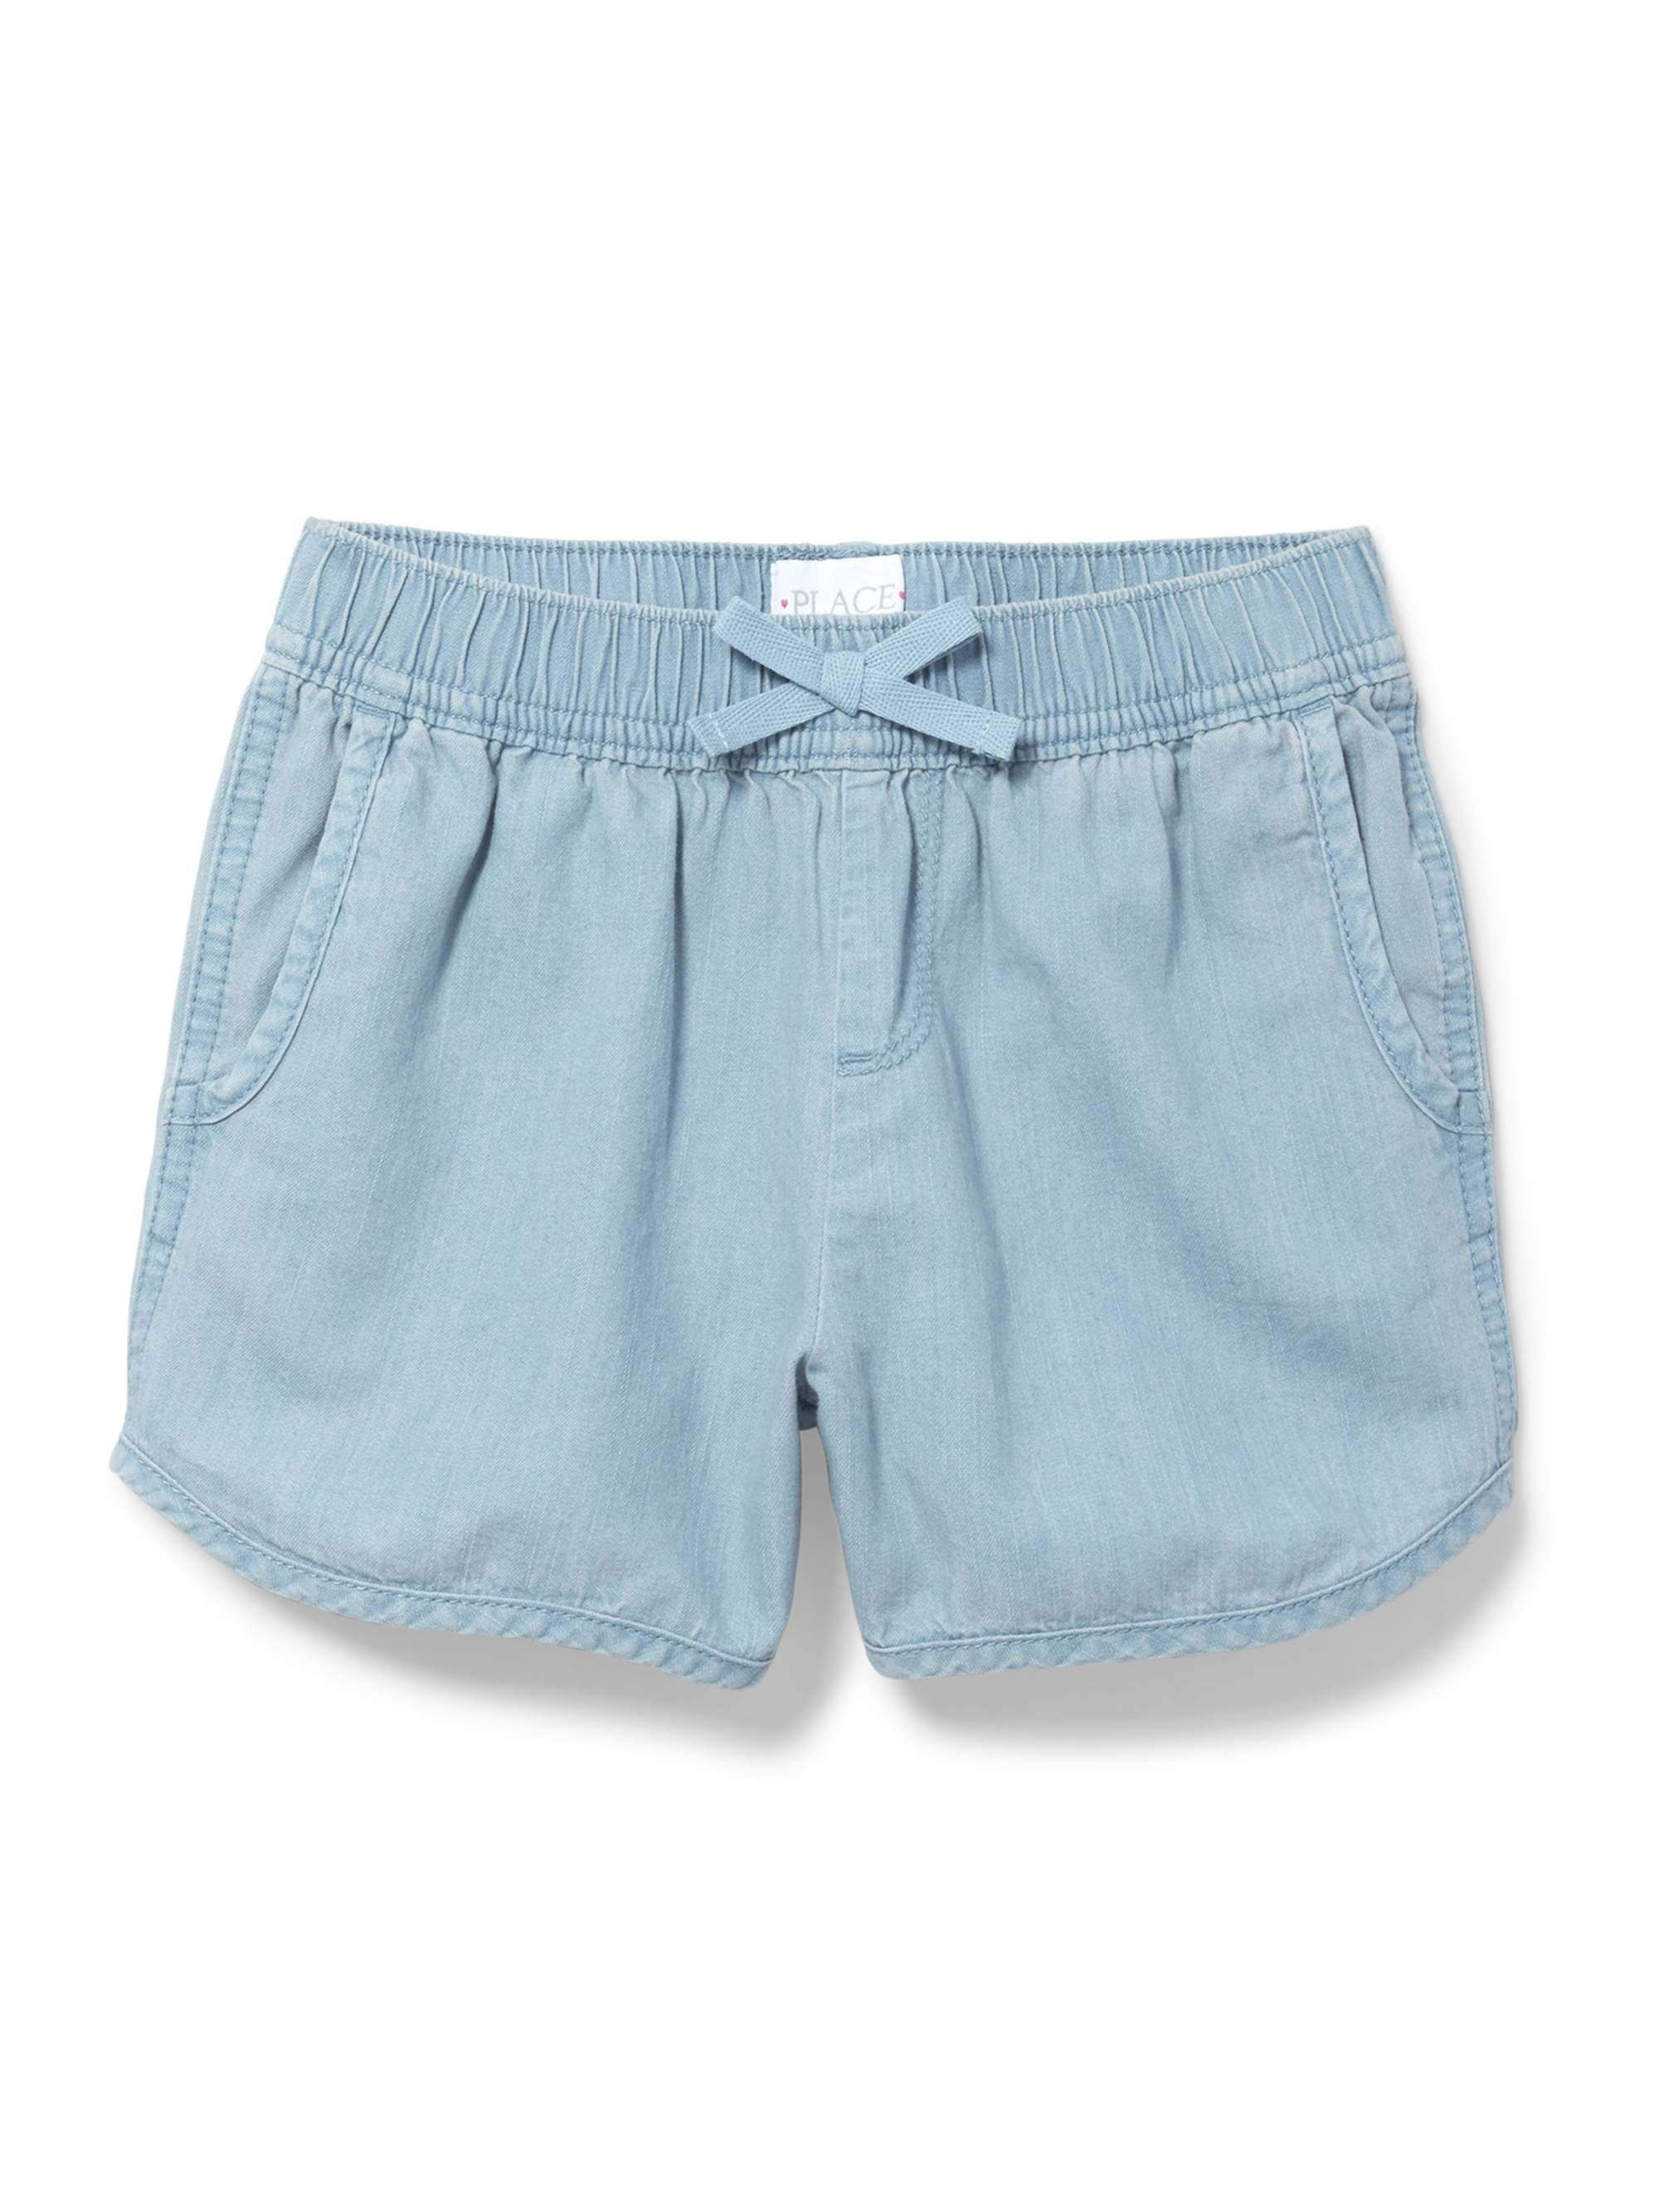 Pull On Dolphin Short (Little Girls & Big Girls)